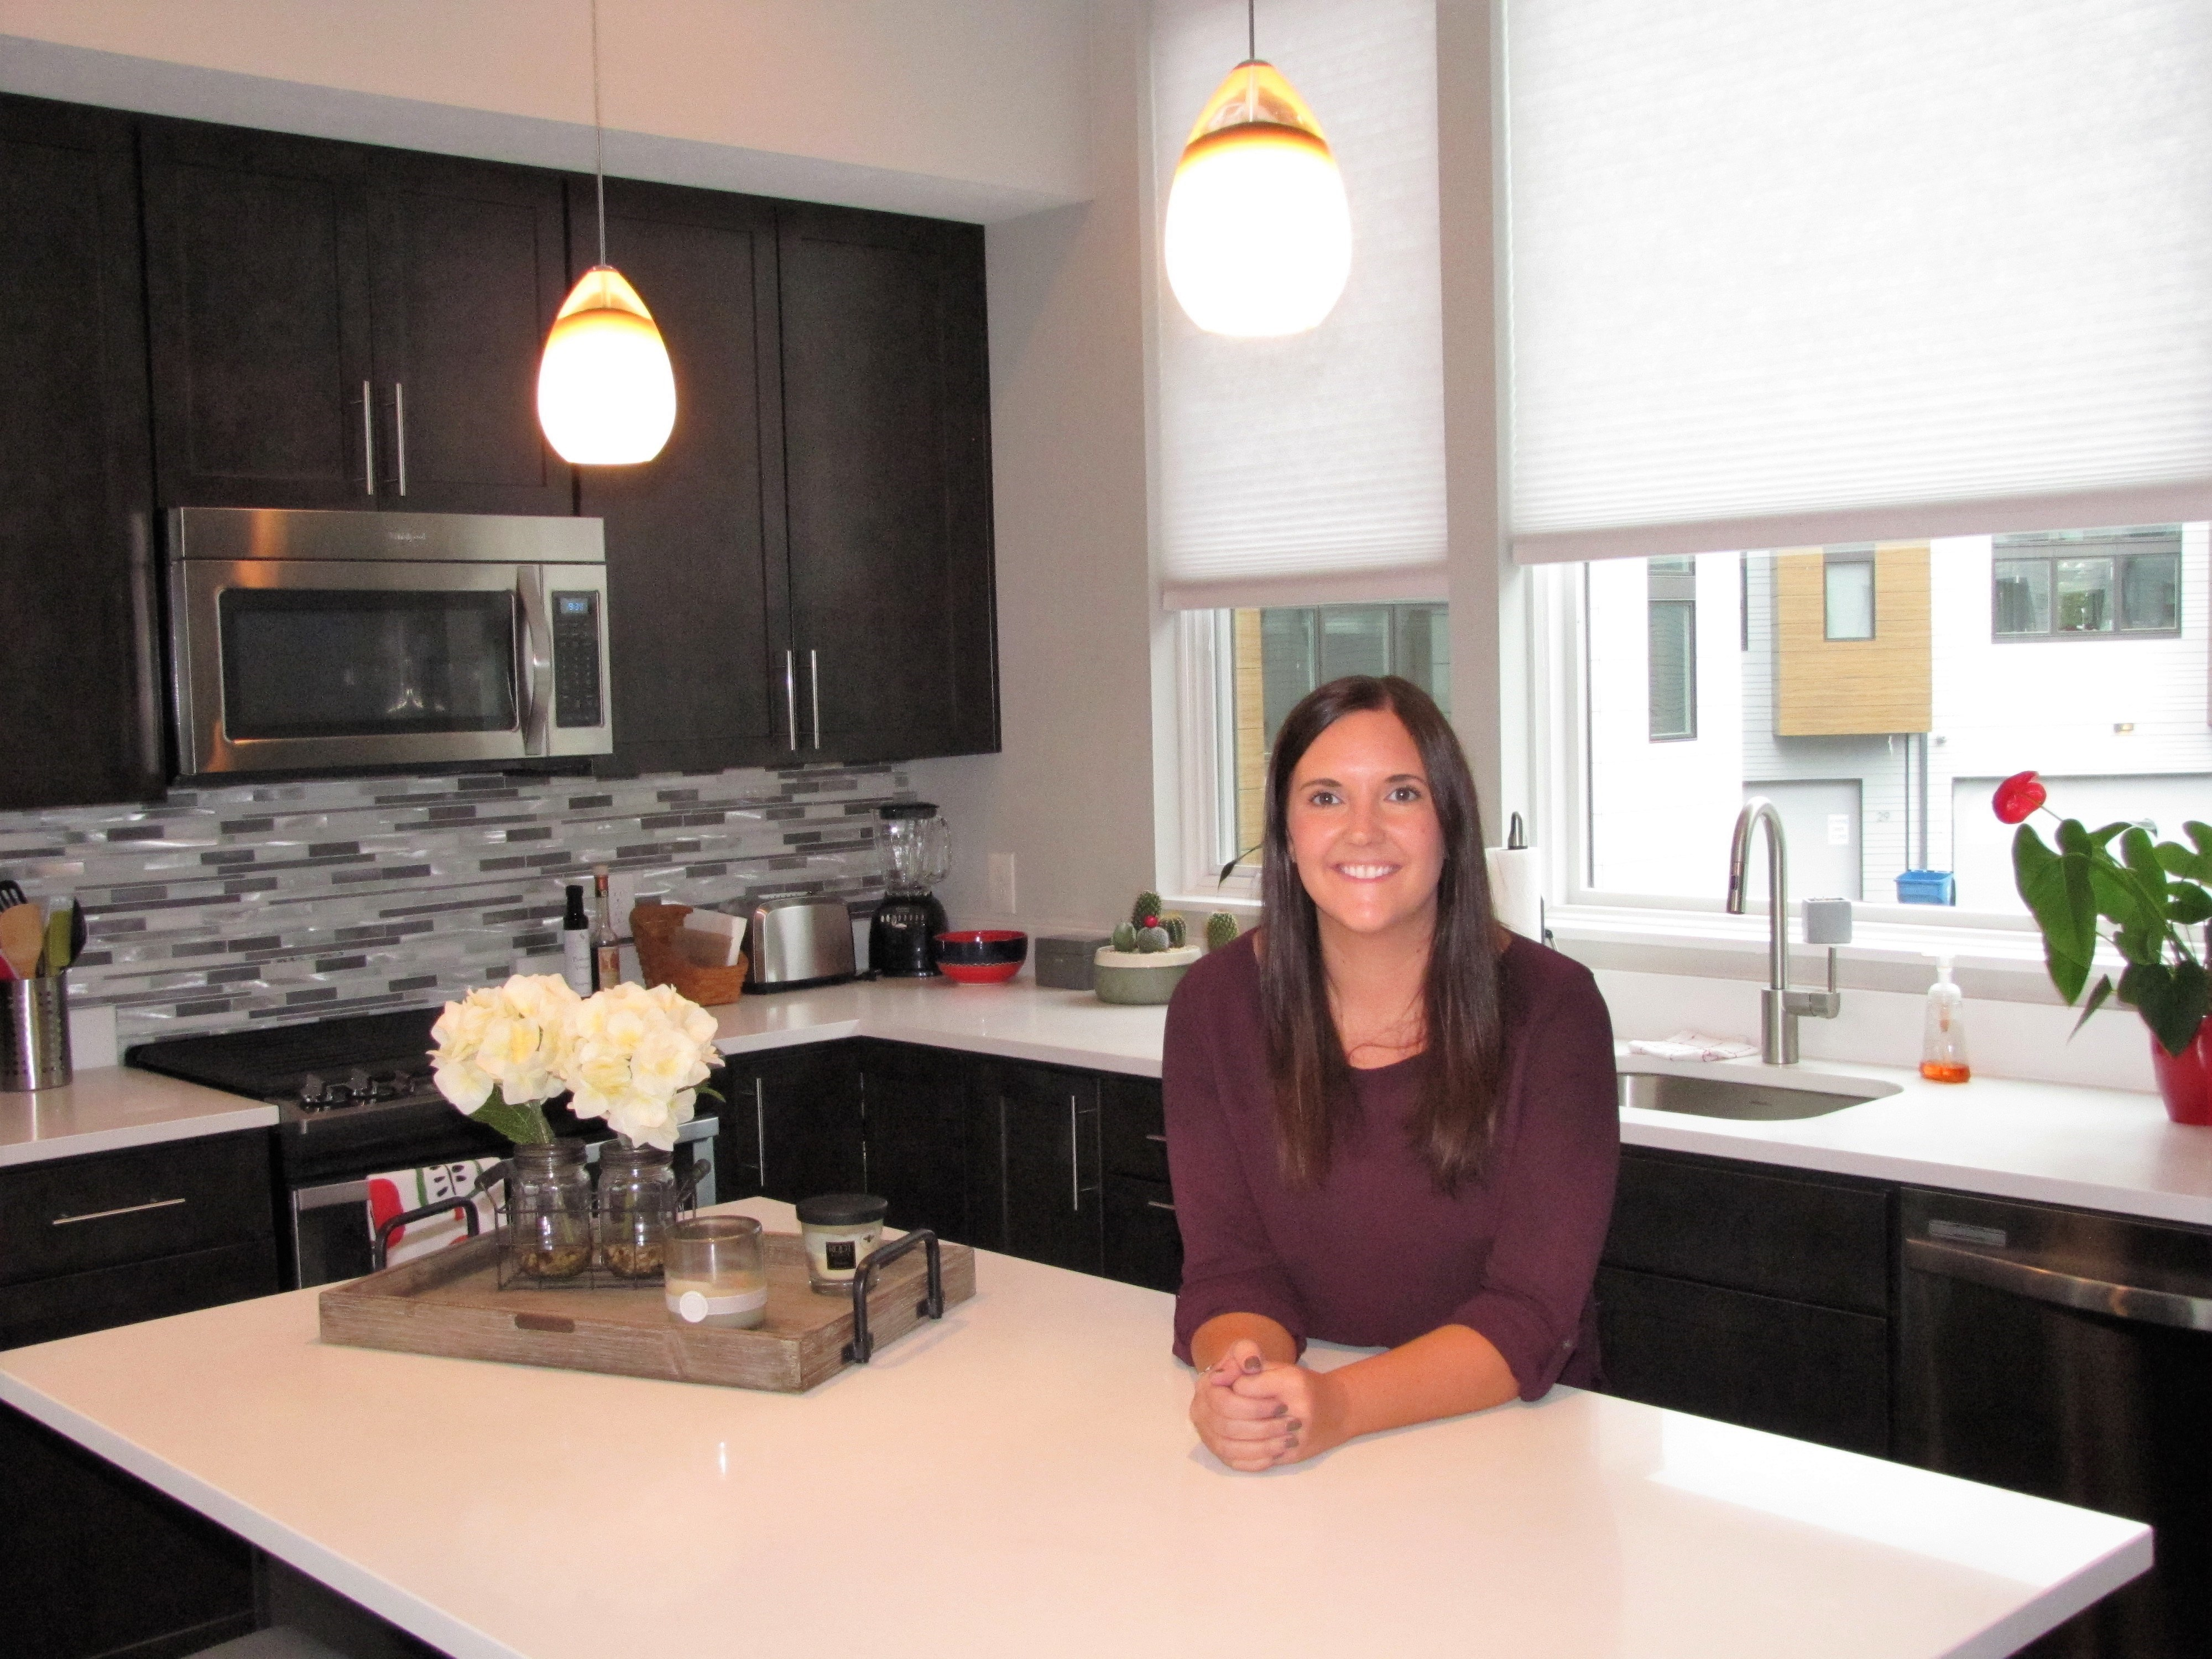 Meet The Residence - Courtney Roumfort